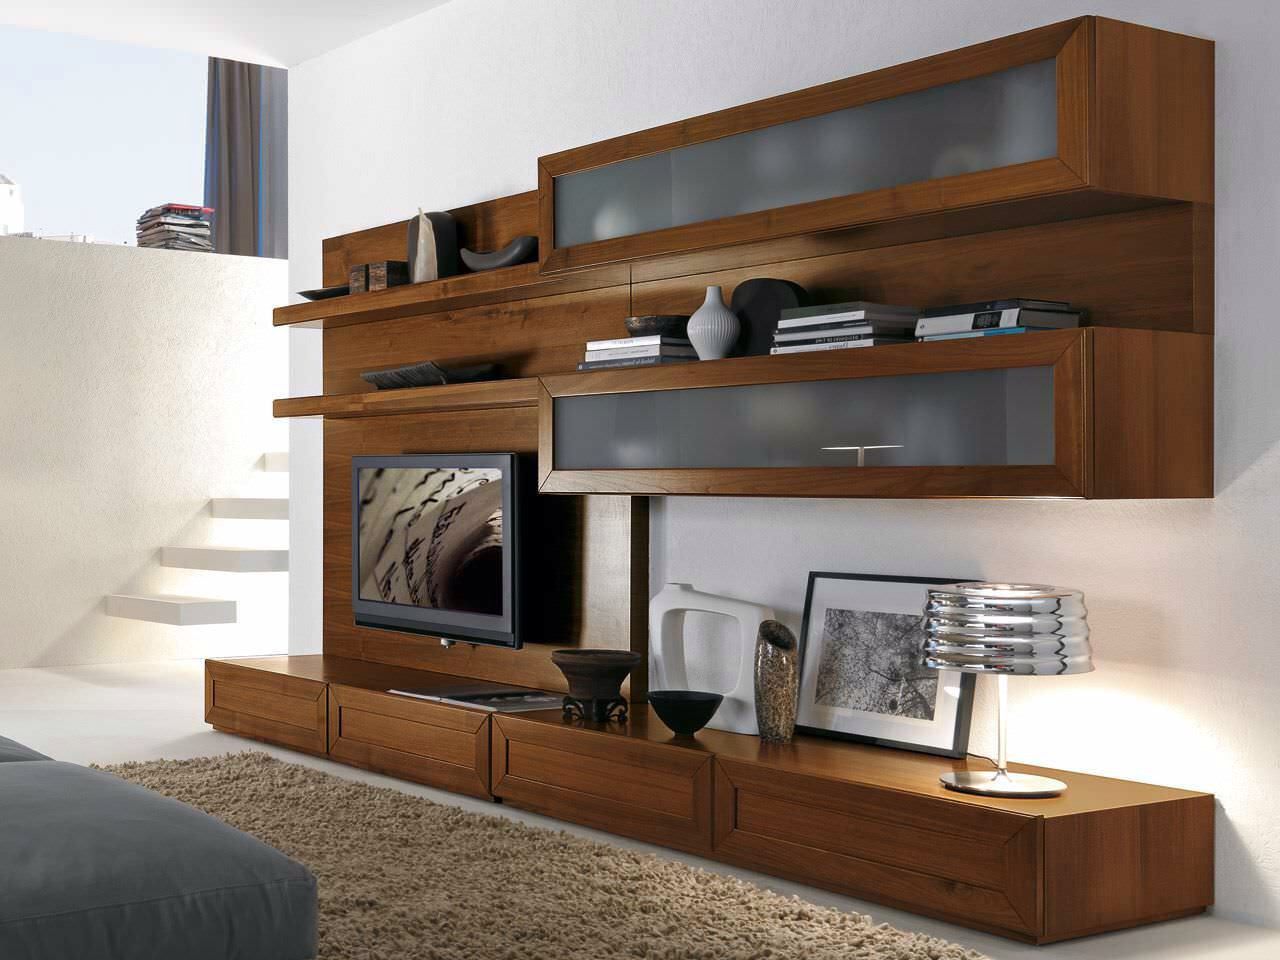 Modern And Contemporary Wall Unit Design | AzMyArch Crappy Site, Really  Pretty Wall Unit. | Dream Home | Pinterest | Wall Unit Designs,  Contemporary And ...